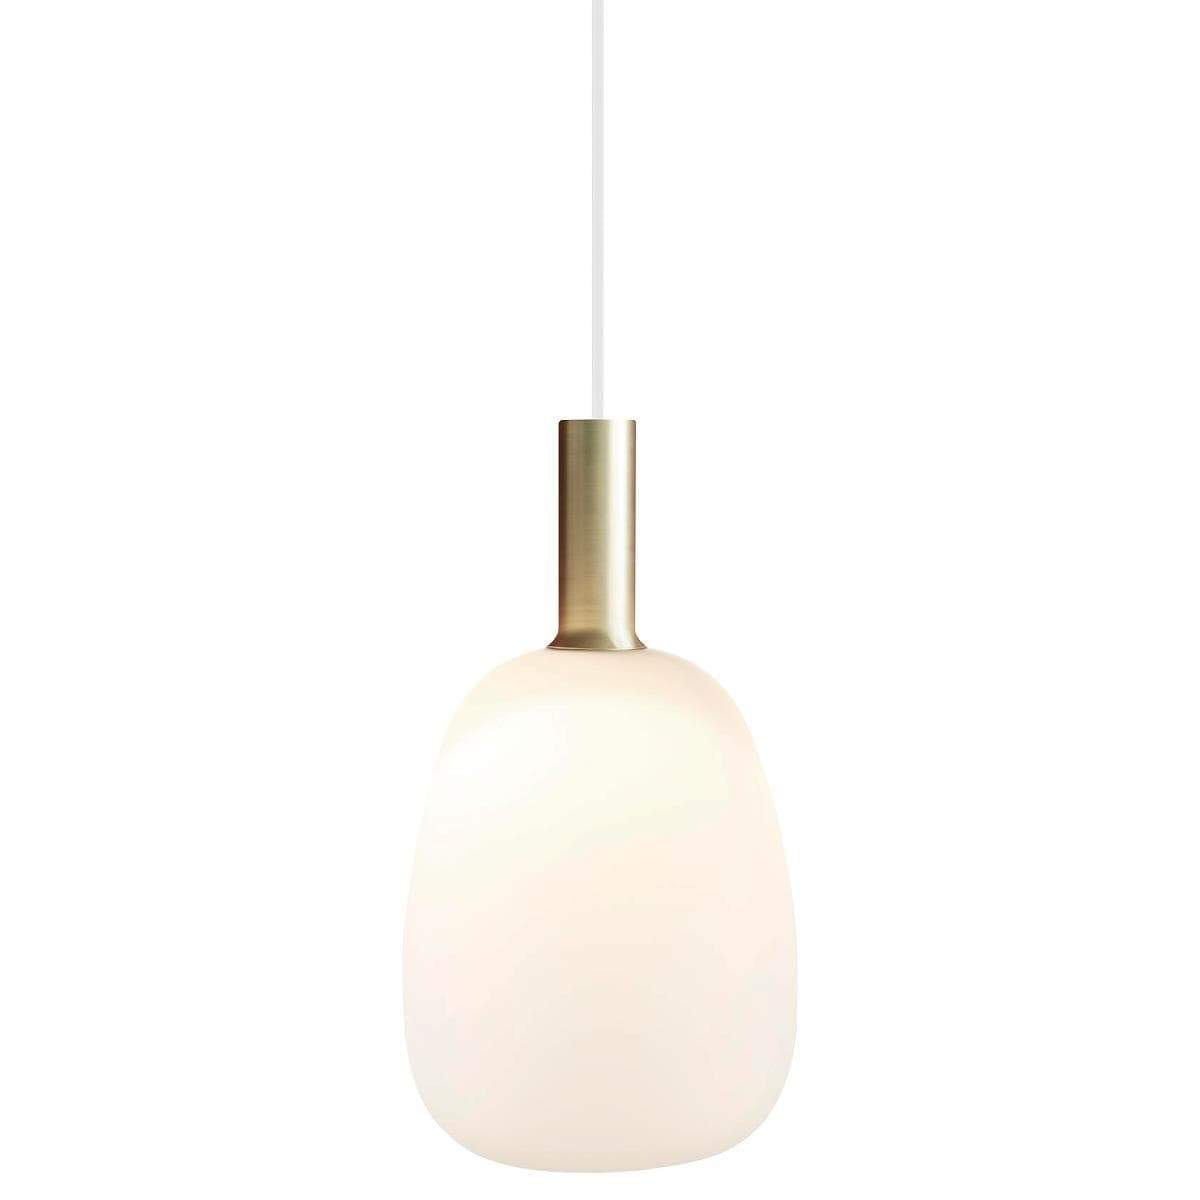 Interior Pendant Alton 23 Pendant Lighting Stores Alton 23 Pendant